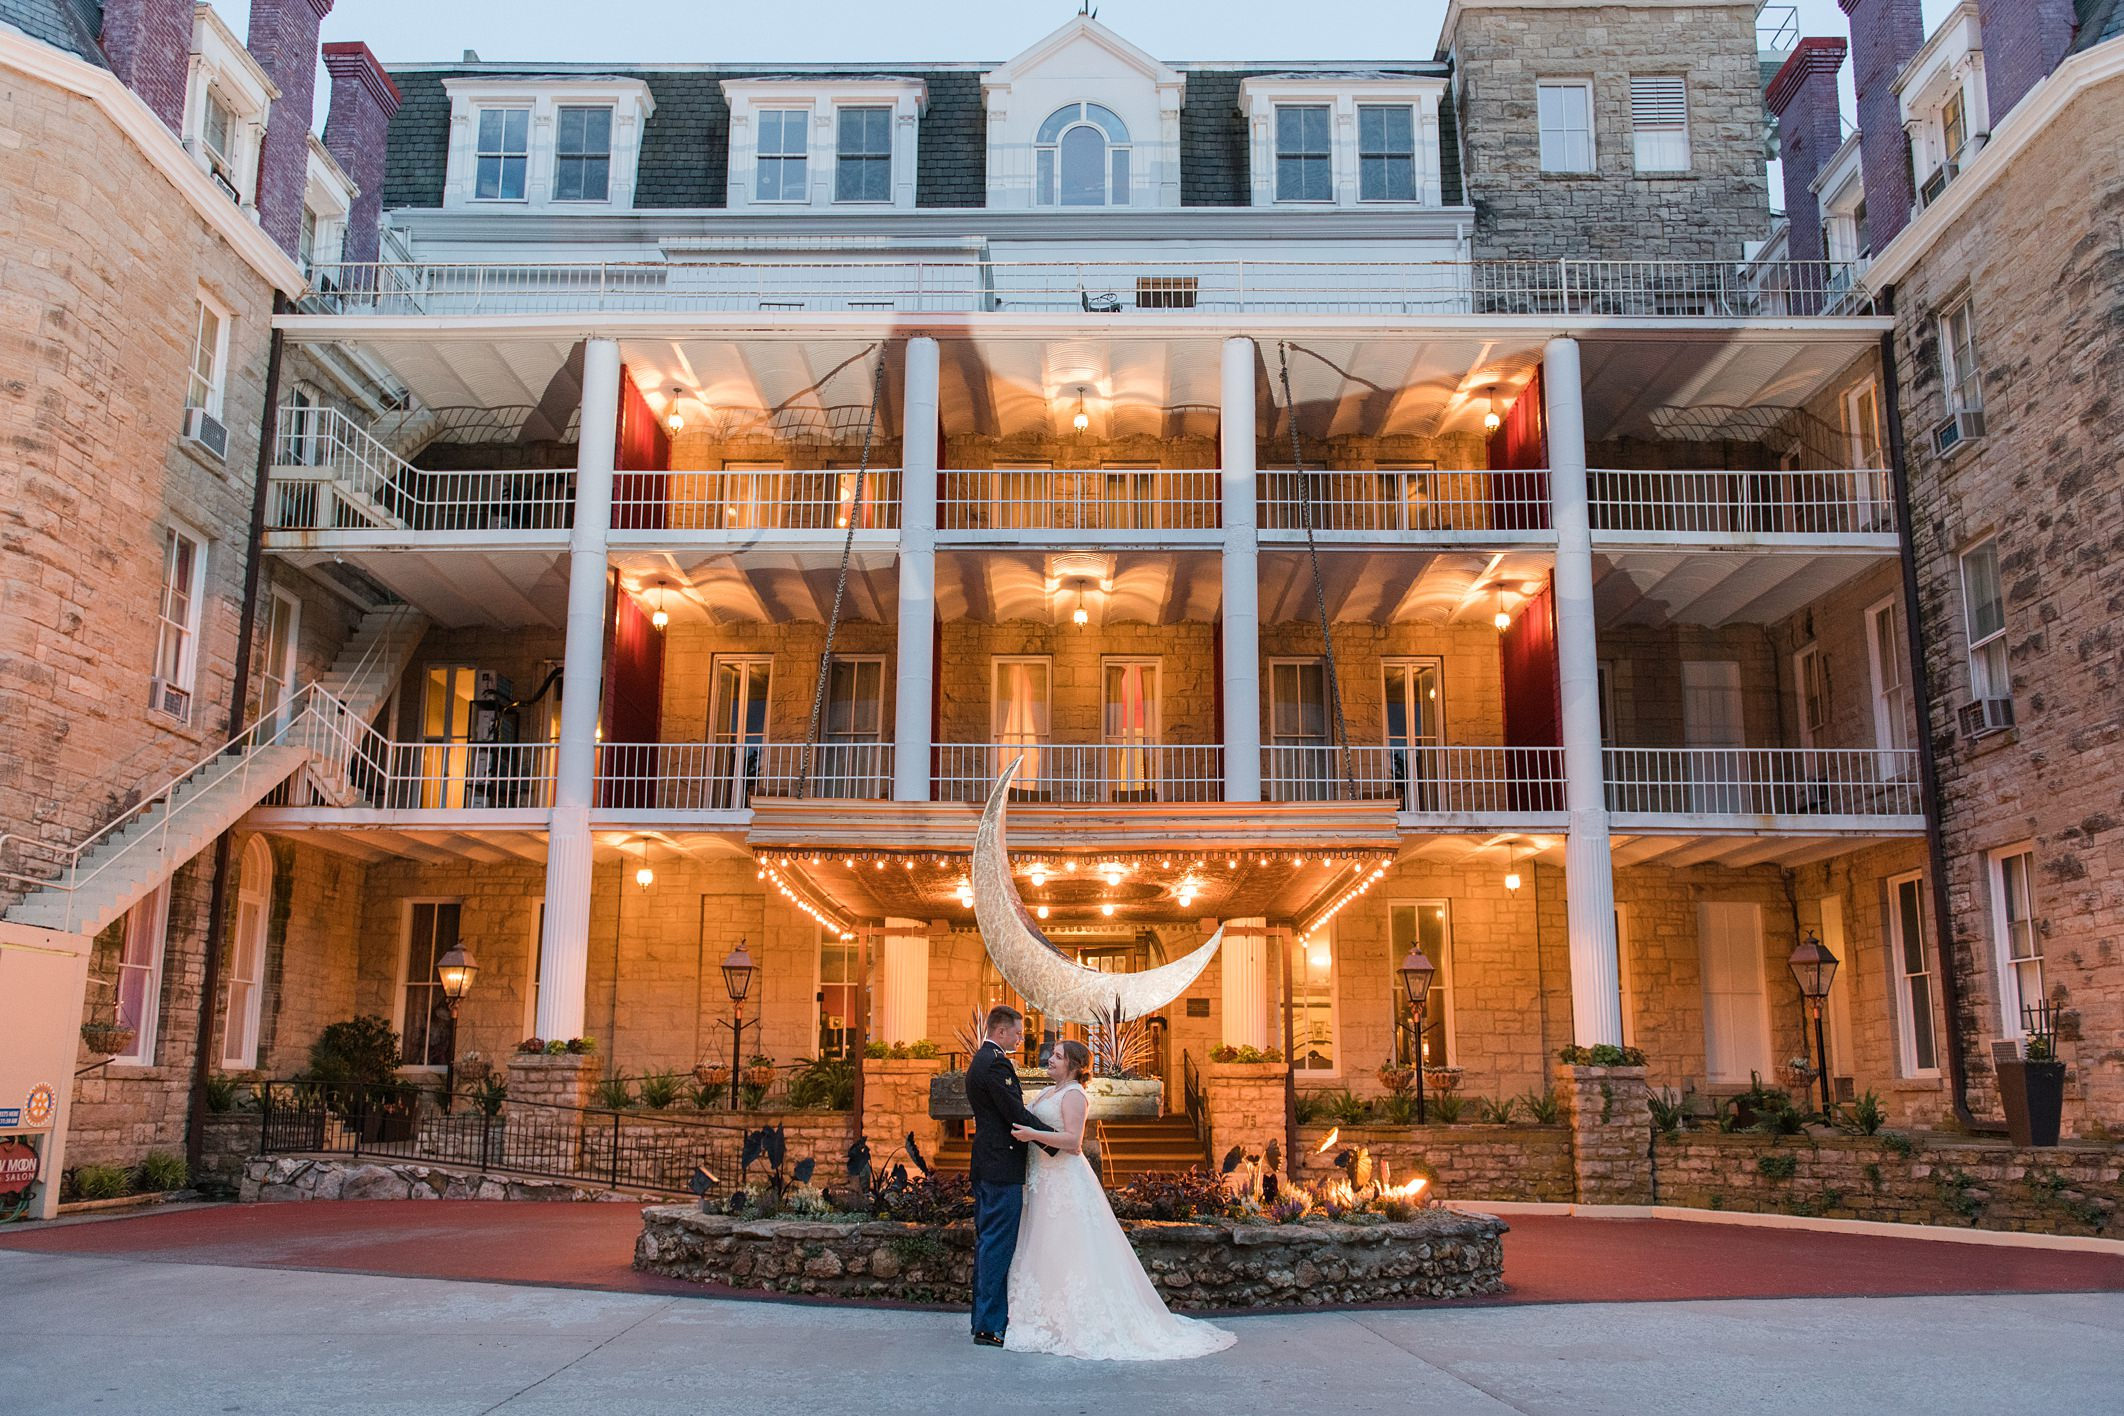 Ryan + Holly Wedding at the 1886 Crescent Hotel & Spa in Eureka Springs, AR